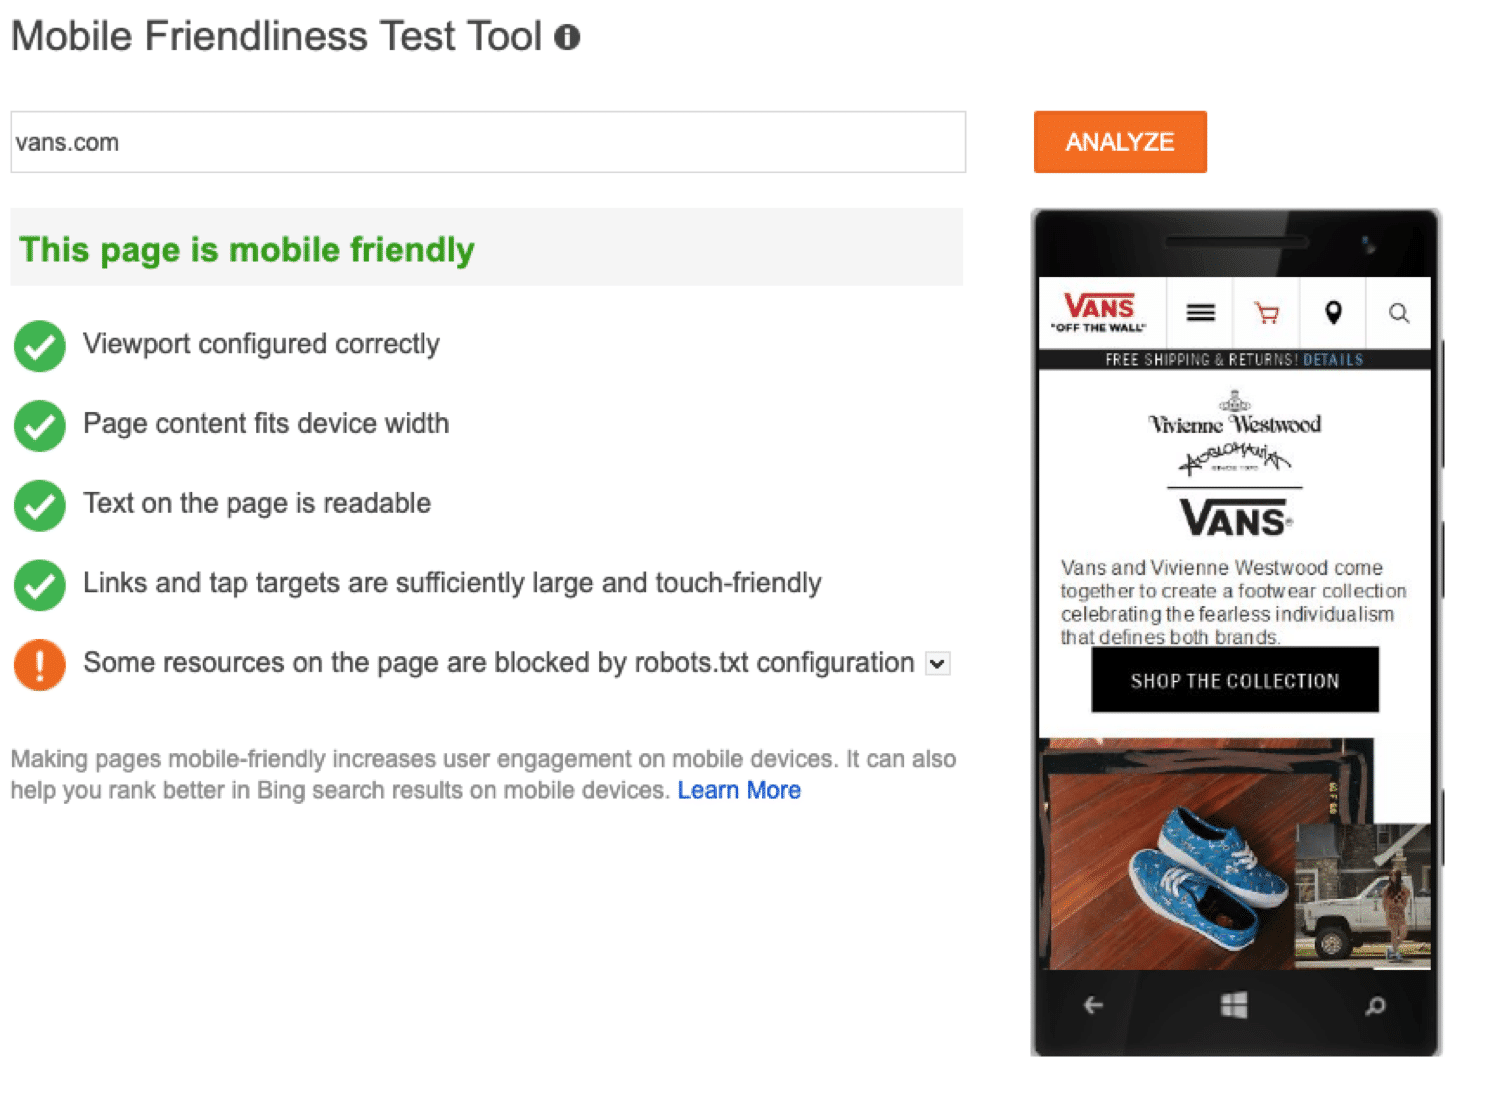 Bing's mobile friendliness test tool